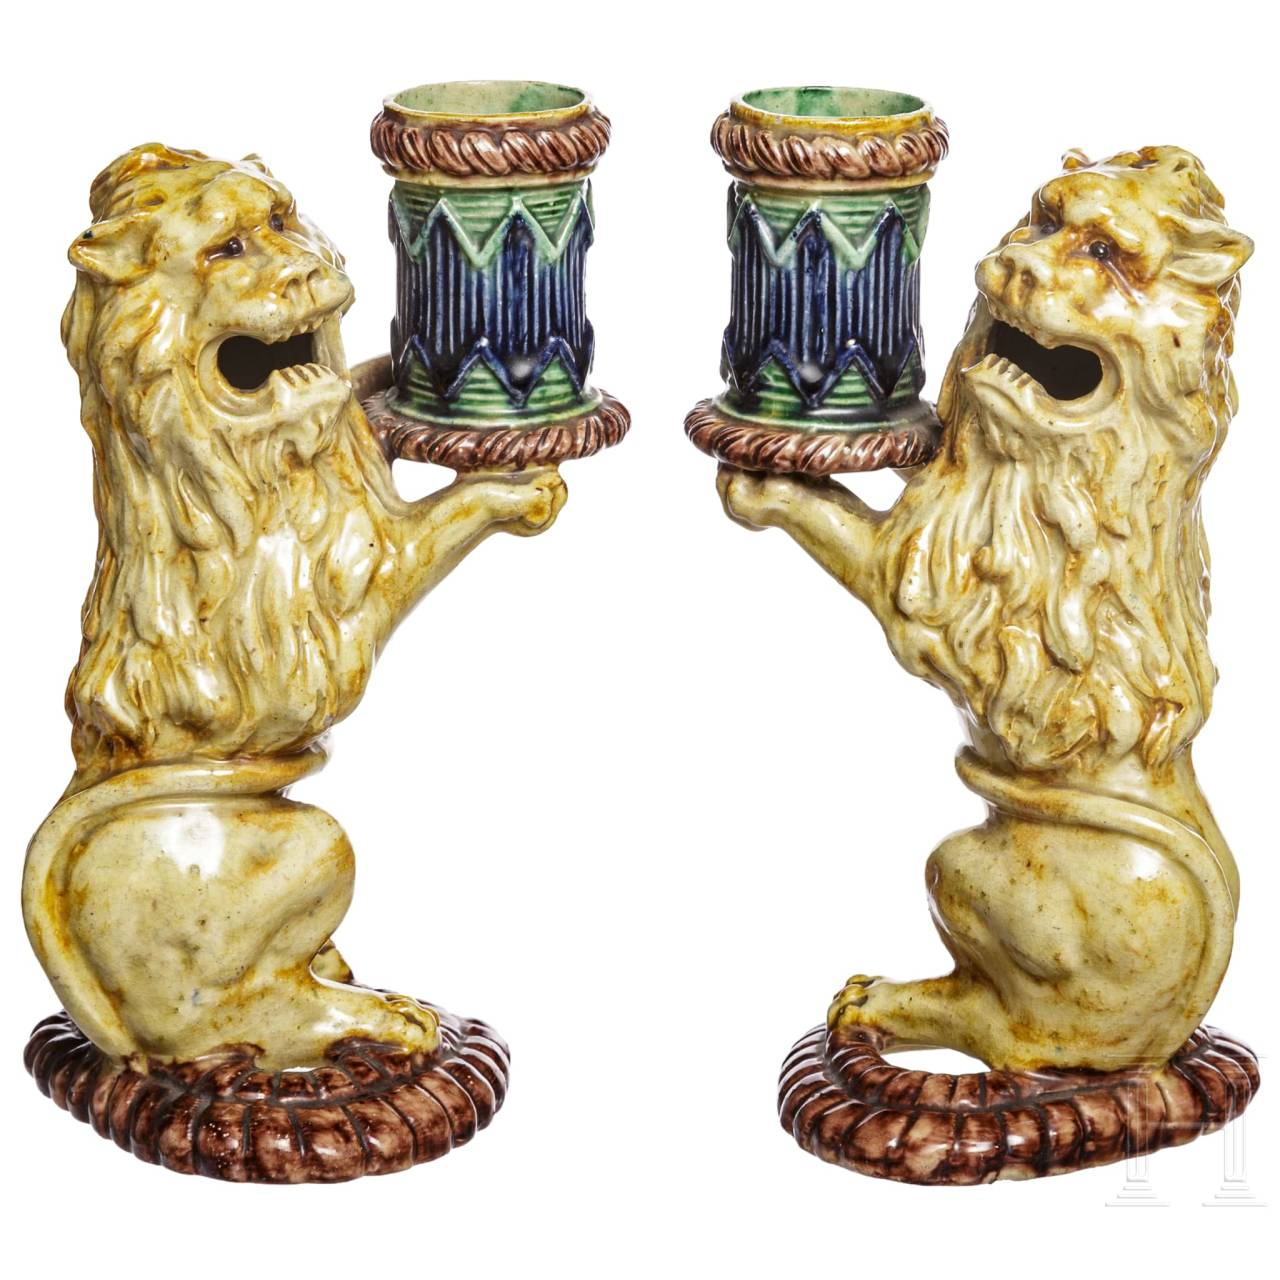 A pair of probably French Fayance lions as a candle holder, 19th century